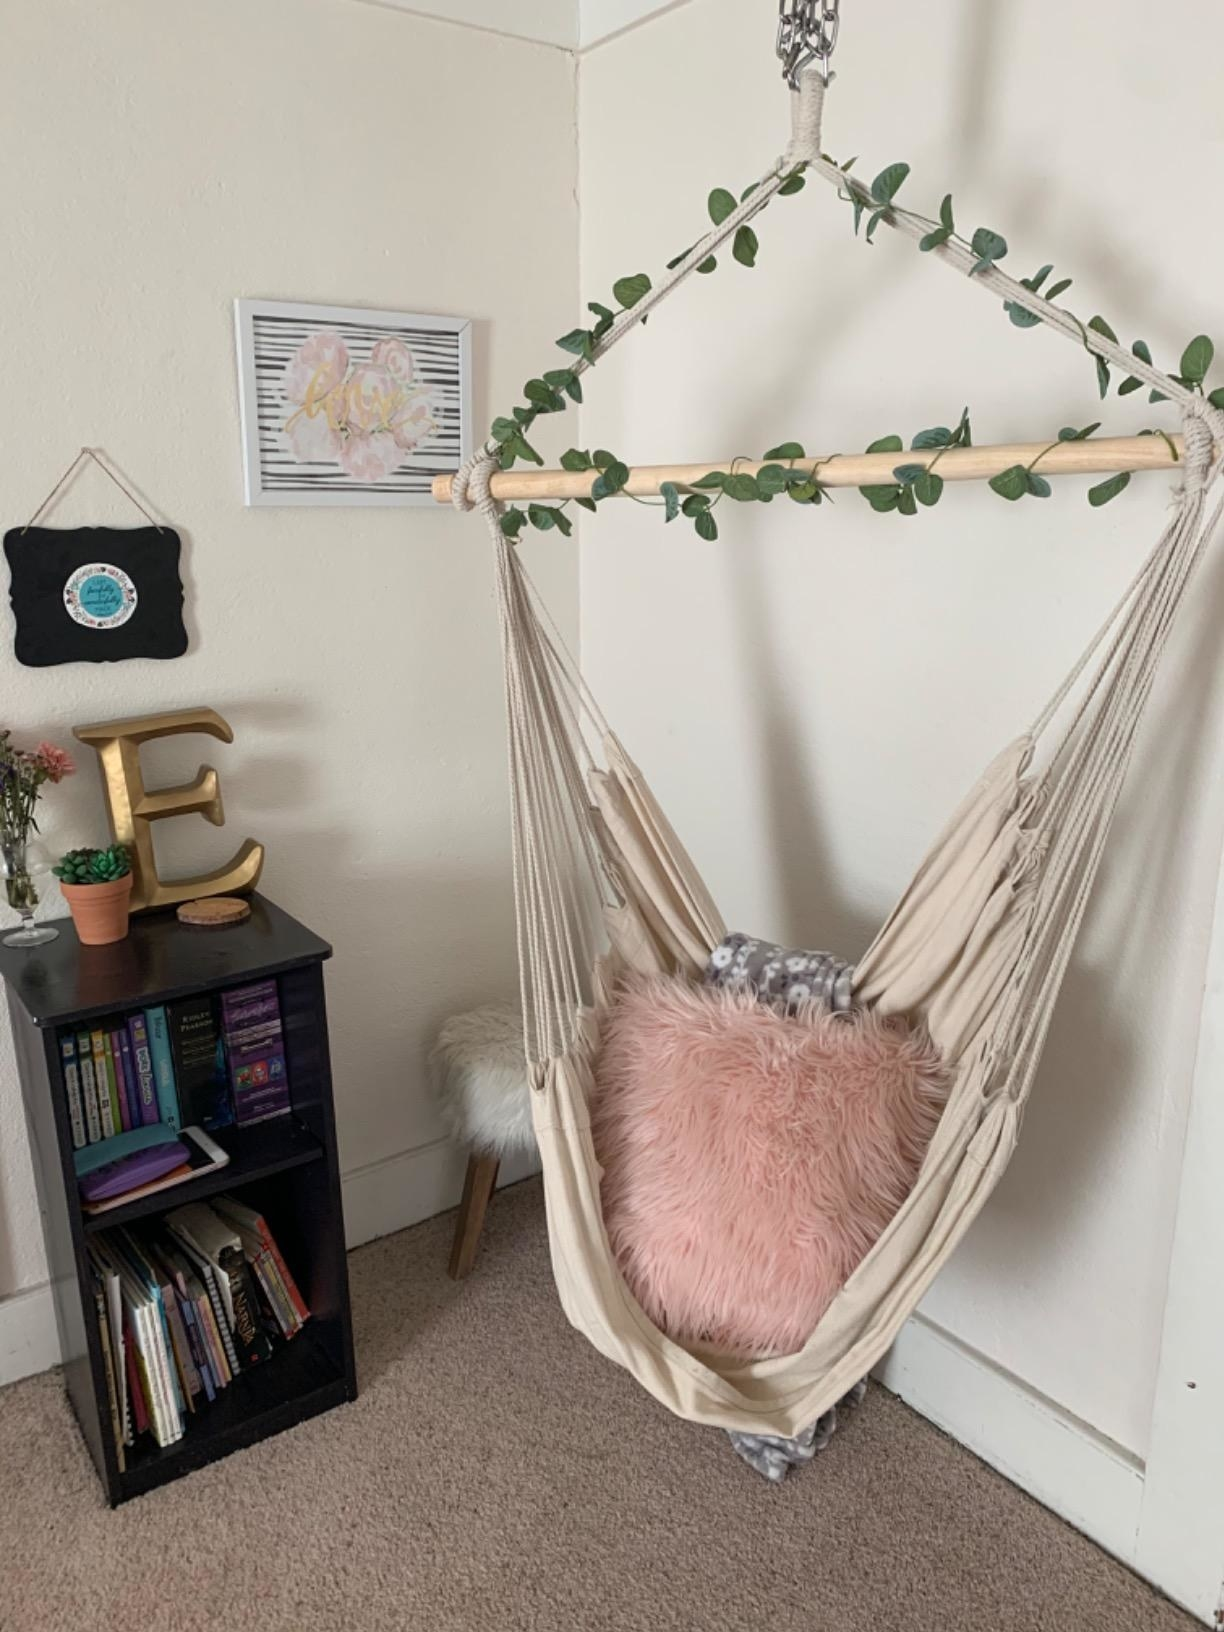 28 Things To Turn Your Bedroom Into A Spring Oasis